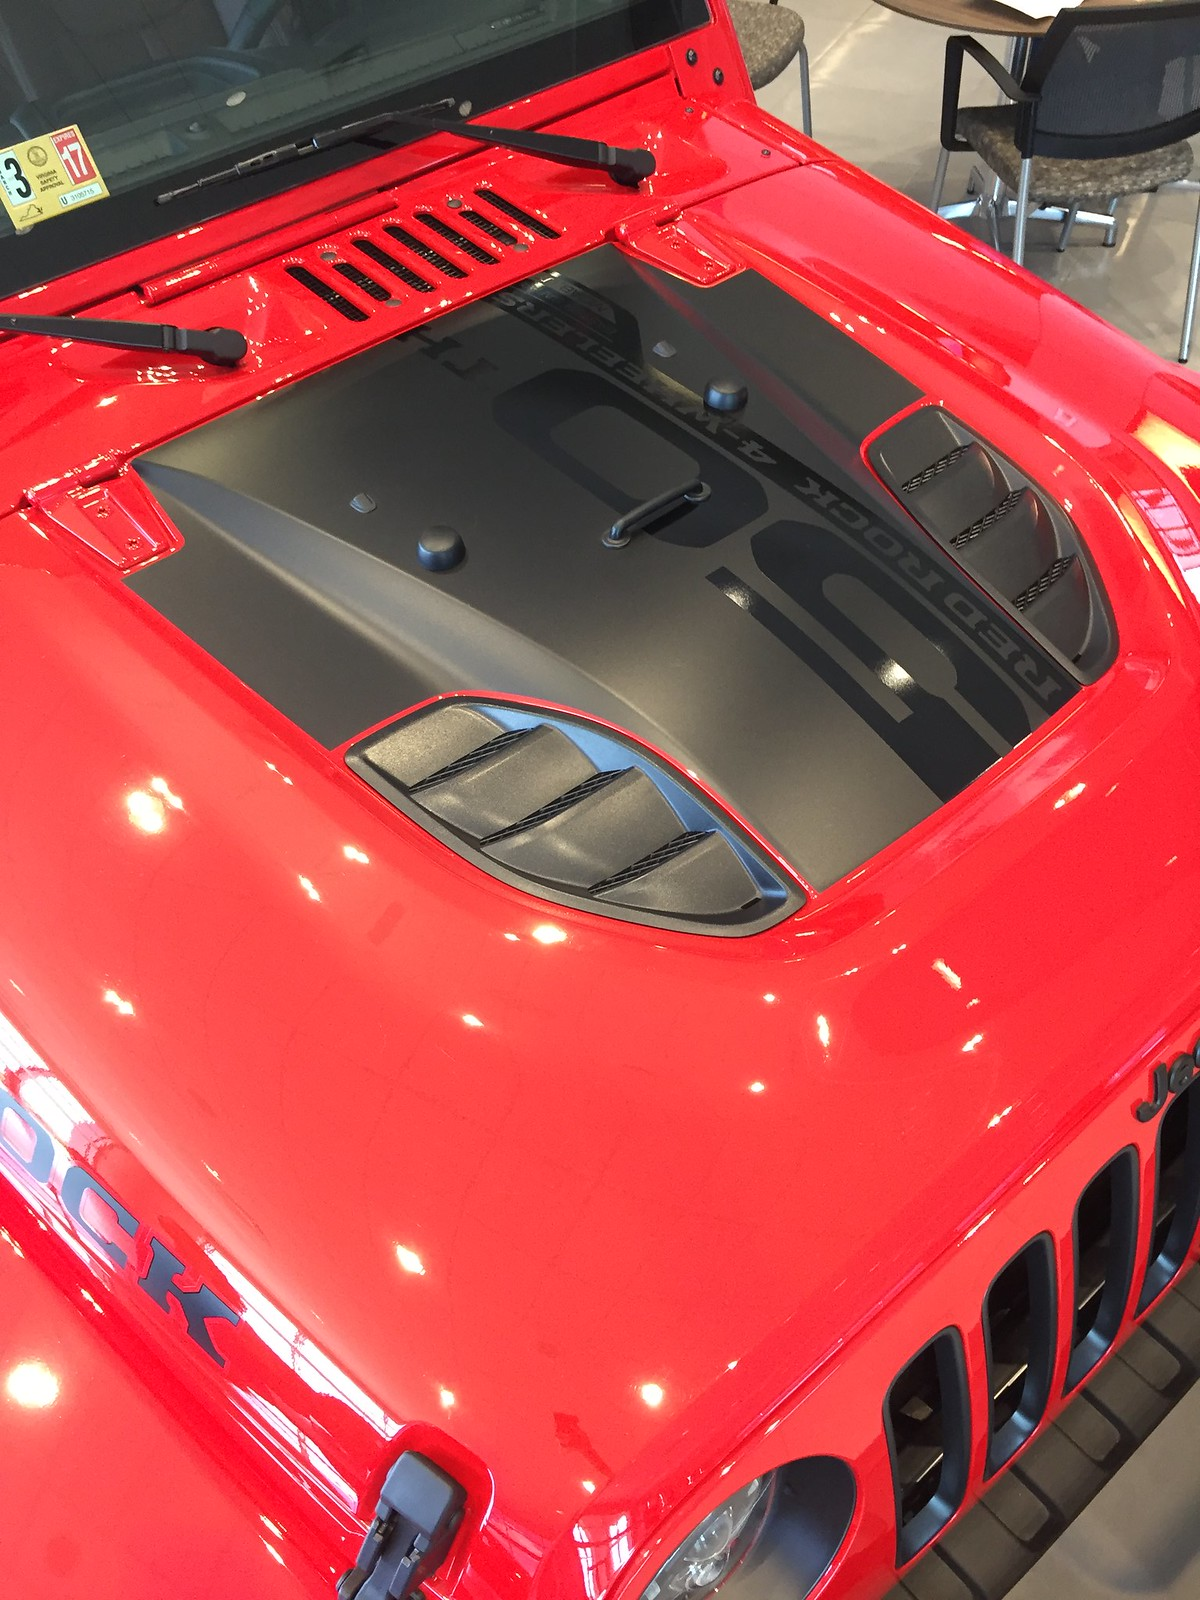 Jeep Wrangler For Sale Ontario >> Black Power Dome hood decal similar to Red Rock ? - Jeep ...